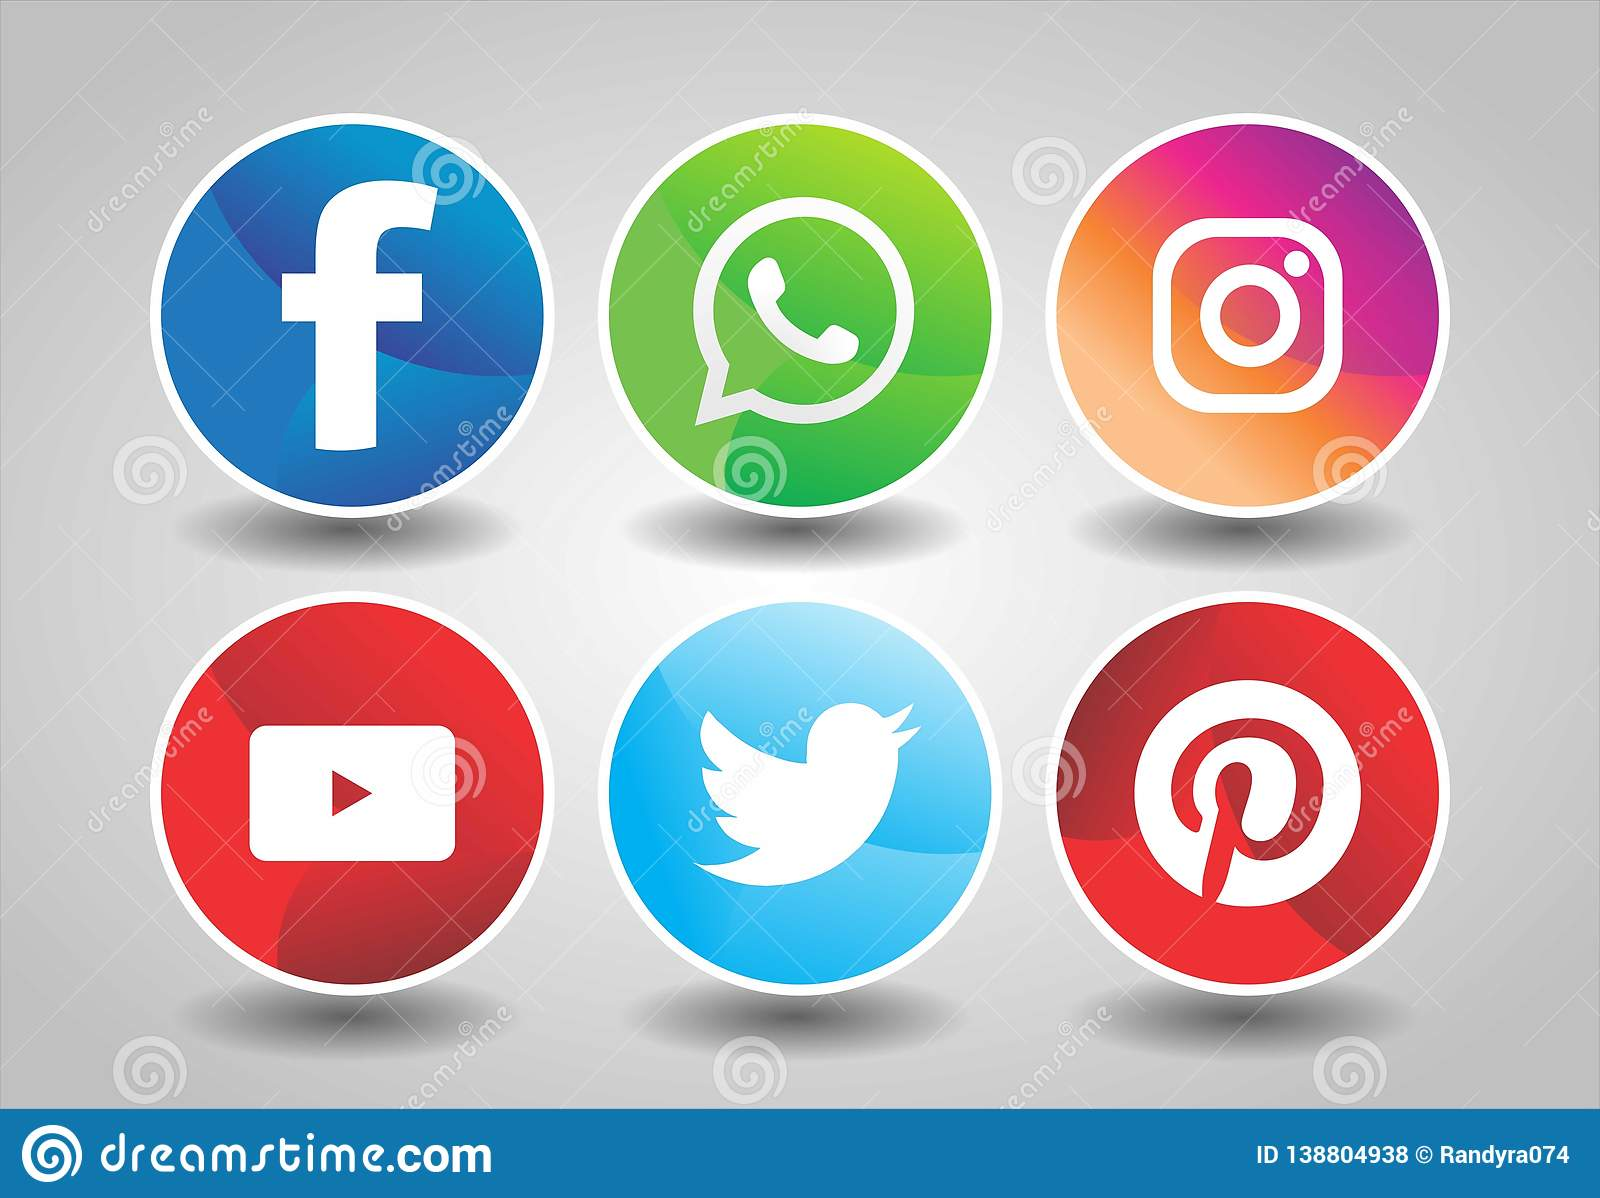 Social Media Logos Pack Collection Of Social Media Icons And Logos Stock Editorial Stock Photo Illustration Of Path Social 138804938